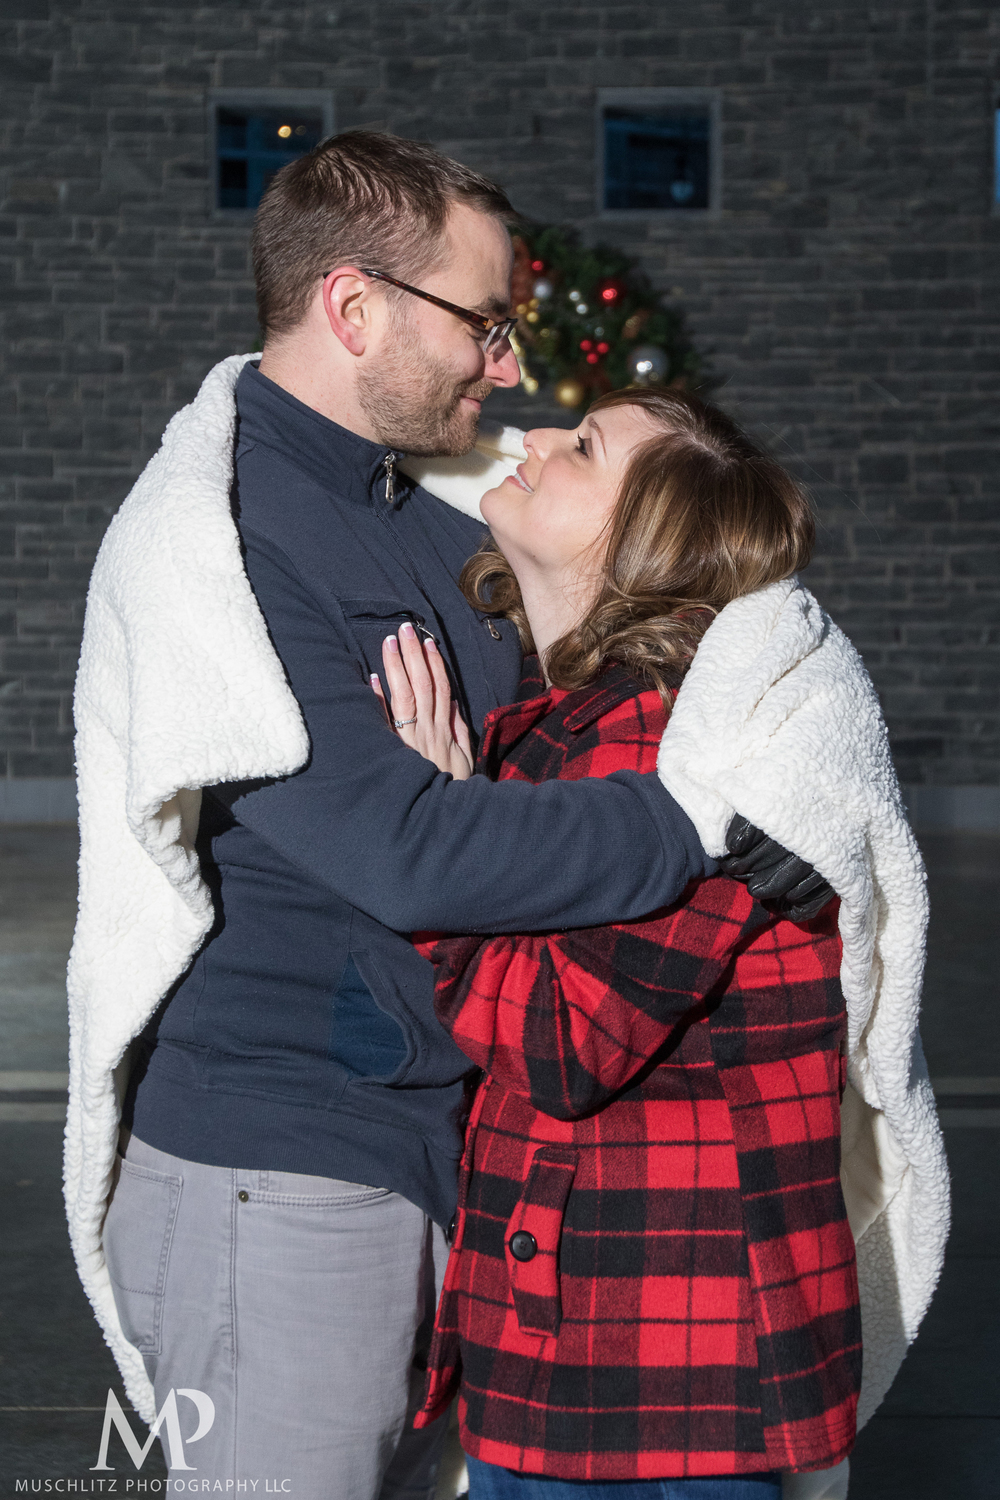 bicentennial-park-engagement-session-holiday-portraits-columbus-ohio-041.JPG